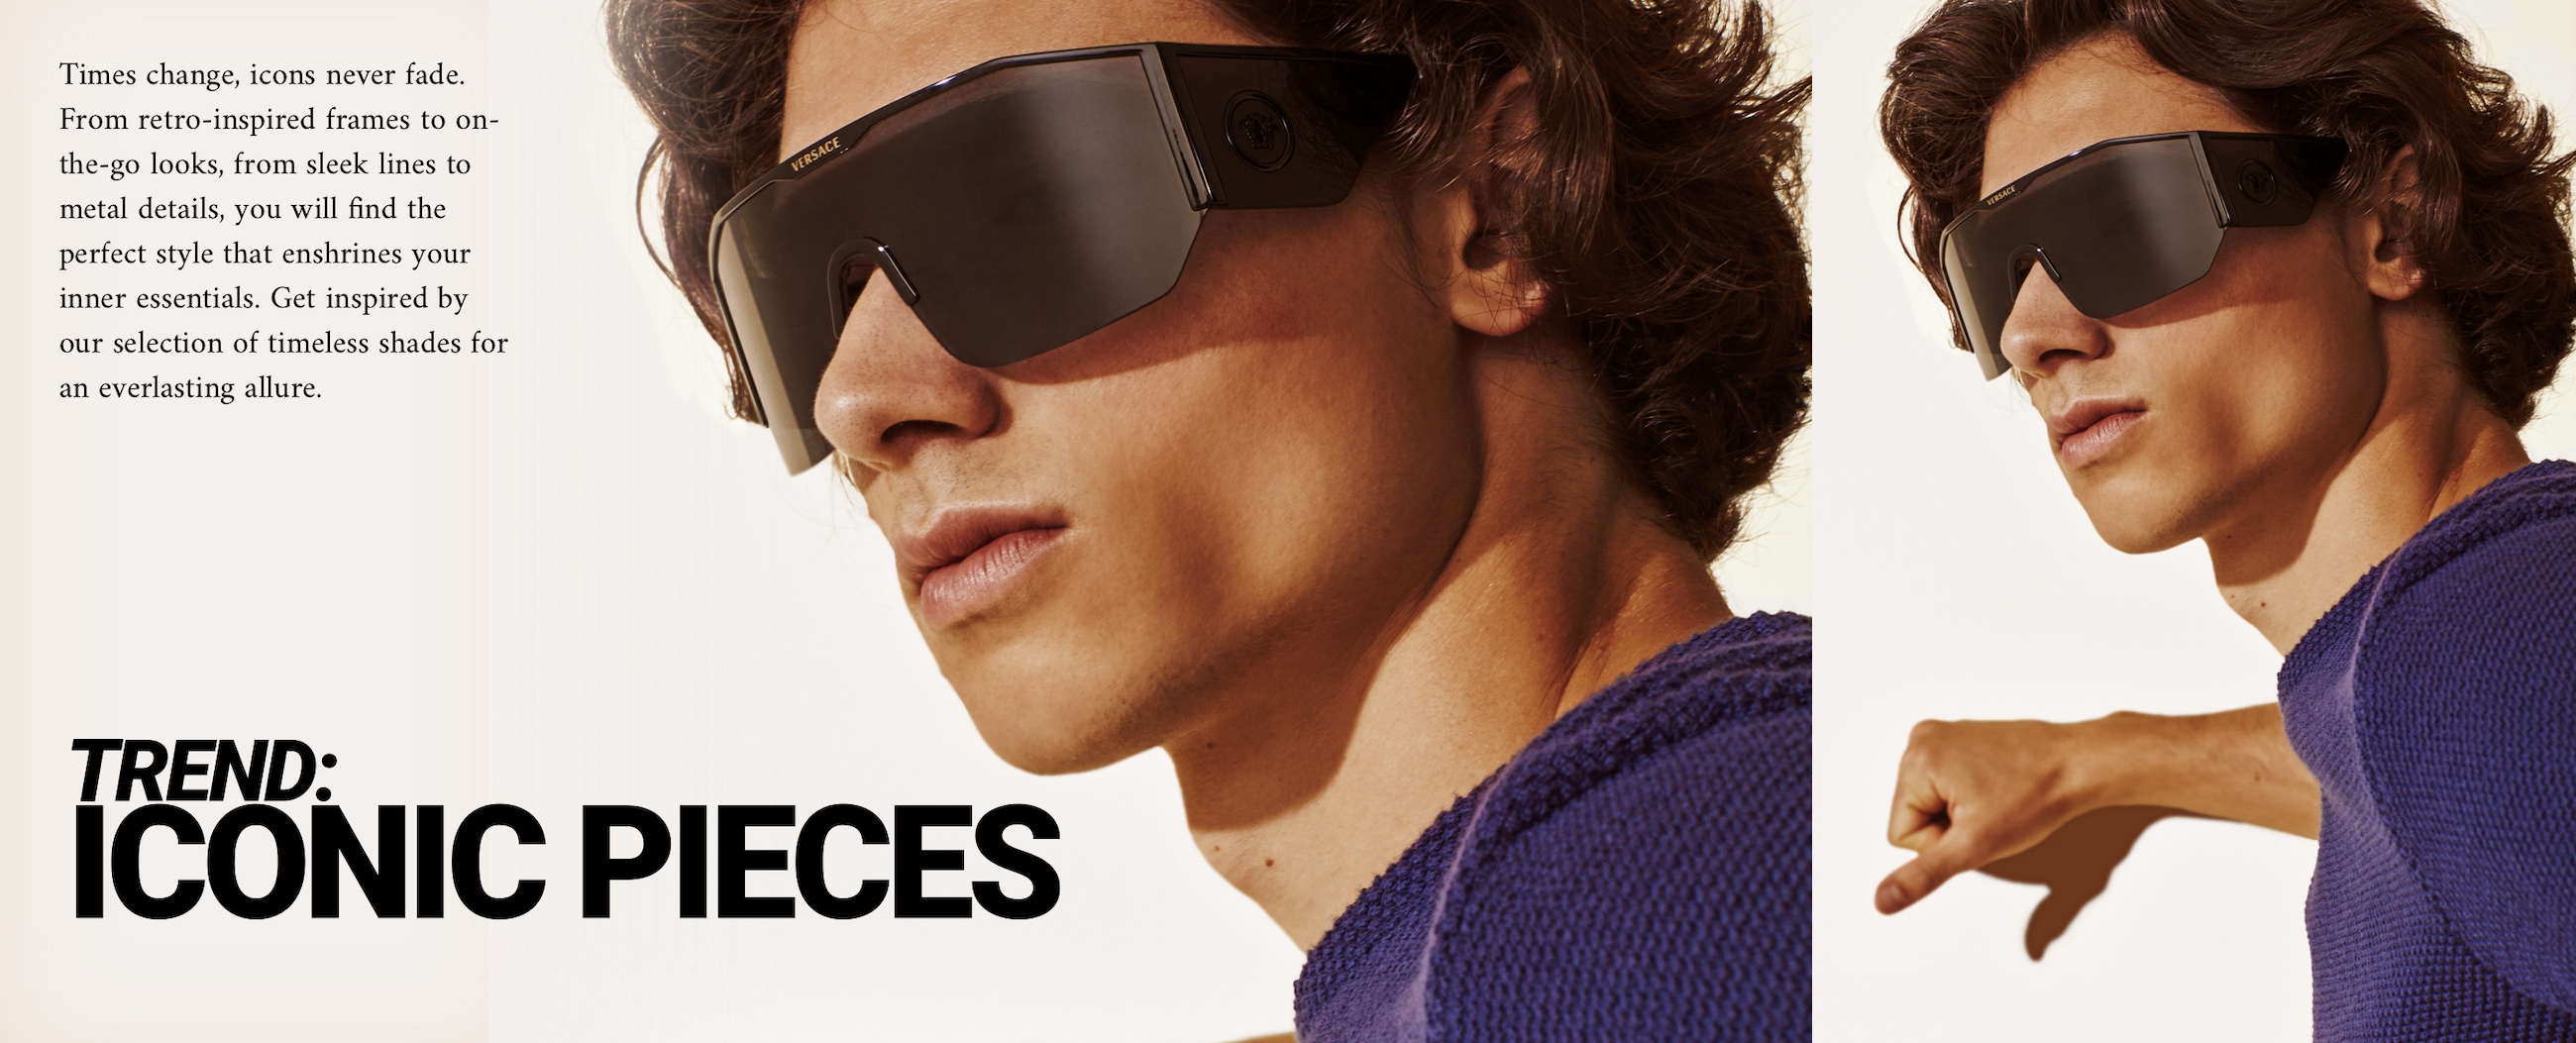 img sunglasses